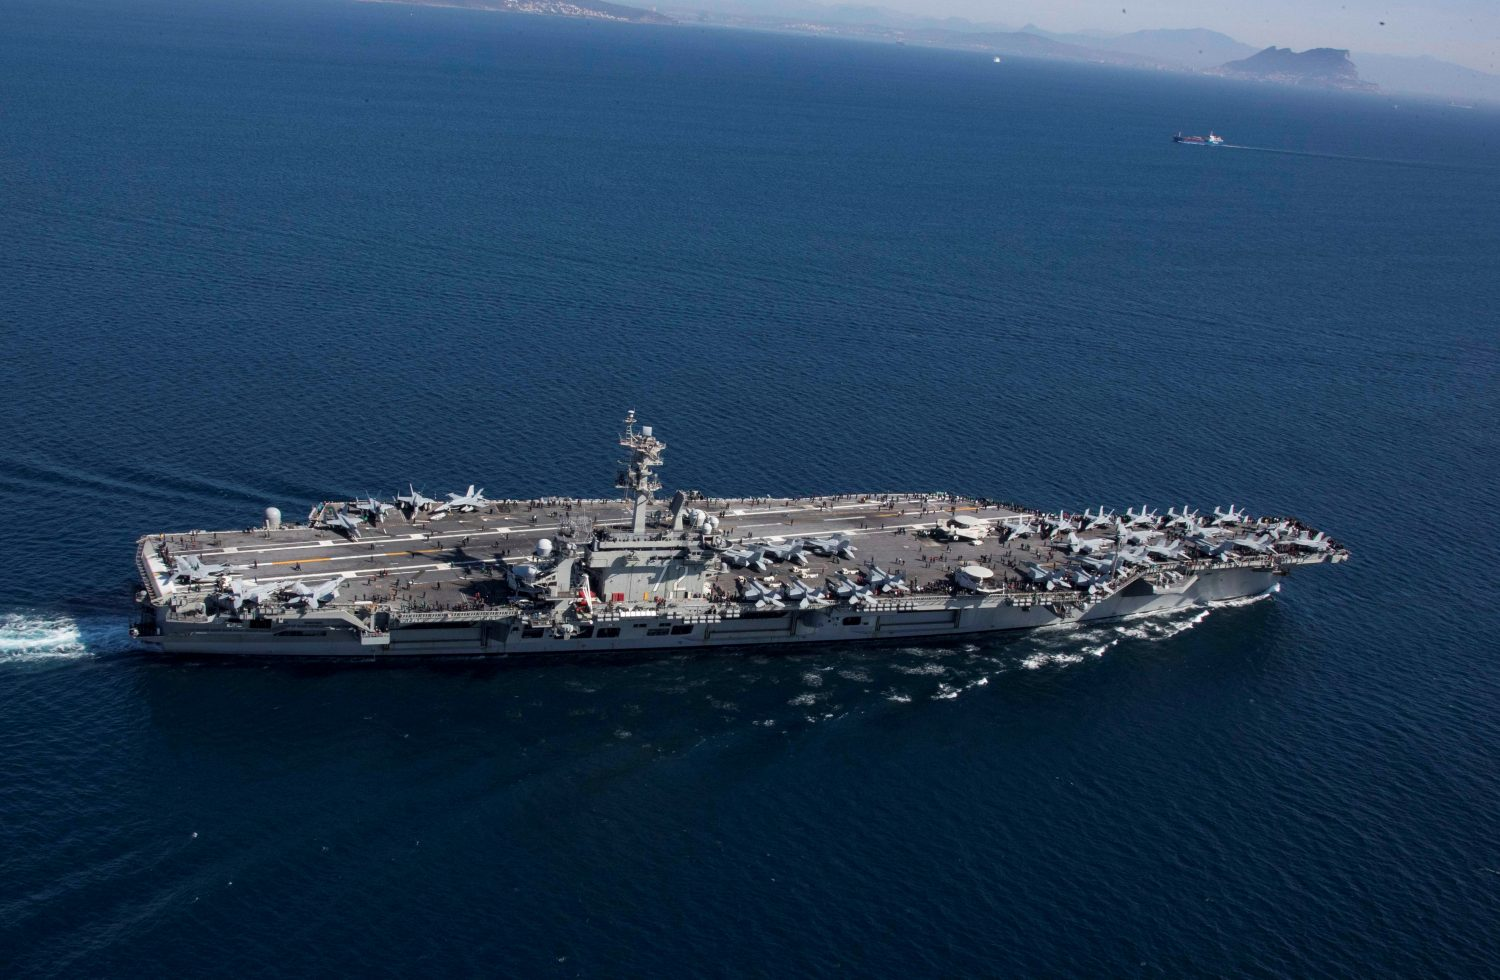 The Nimitz-class aircraft carrier USS Abraham Lincoln (CVN 72) transits the Strait of Gibraltar, entering the Mediterranean Sea as it continues operations in the 6th Fleet area of responsibility in this April 13, 2019 photo supplied by the U.S. Navy. U.S. Navy/Mass Communication Specialist 2nd Class Clint Davis/Handout via REUTERS